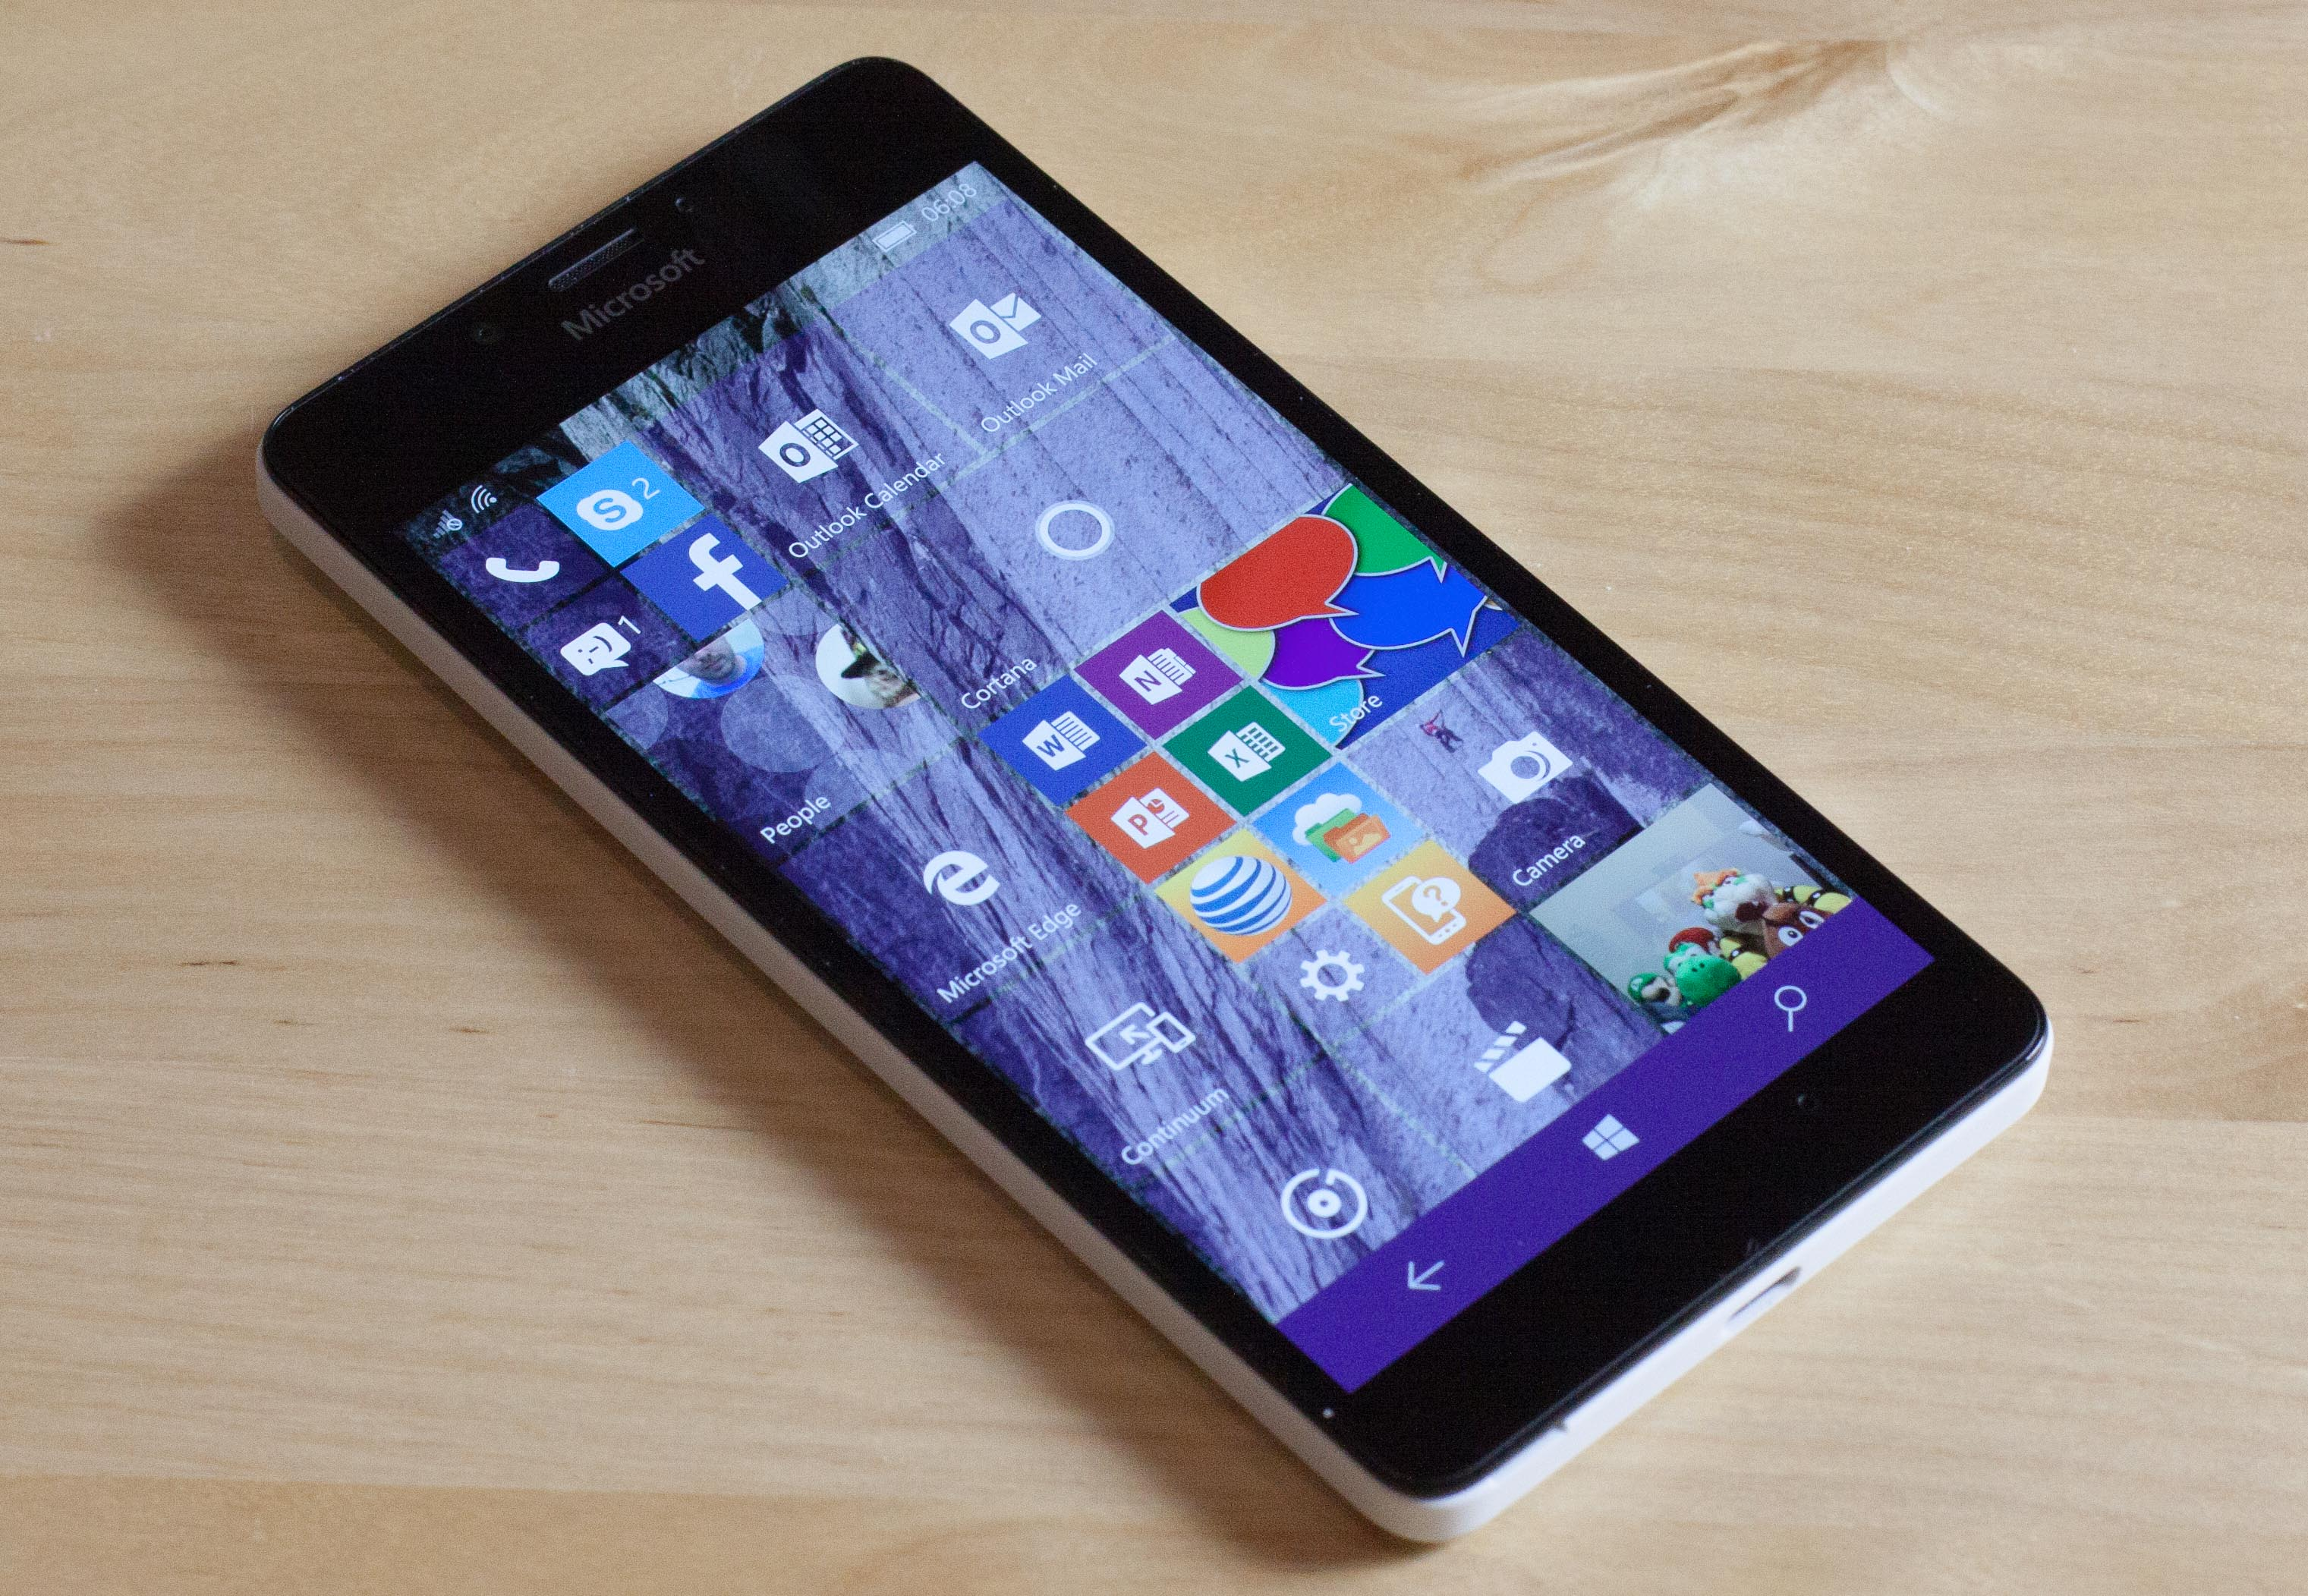 Windows 10 phones at t 2015 - Enlarge new lumias are still the only place you can get official support for windows 10 mobile